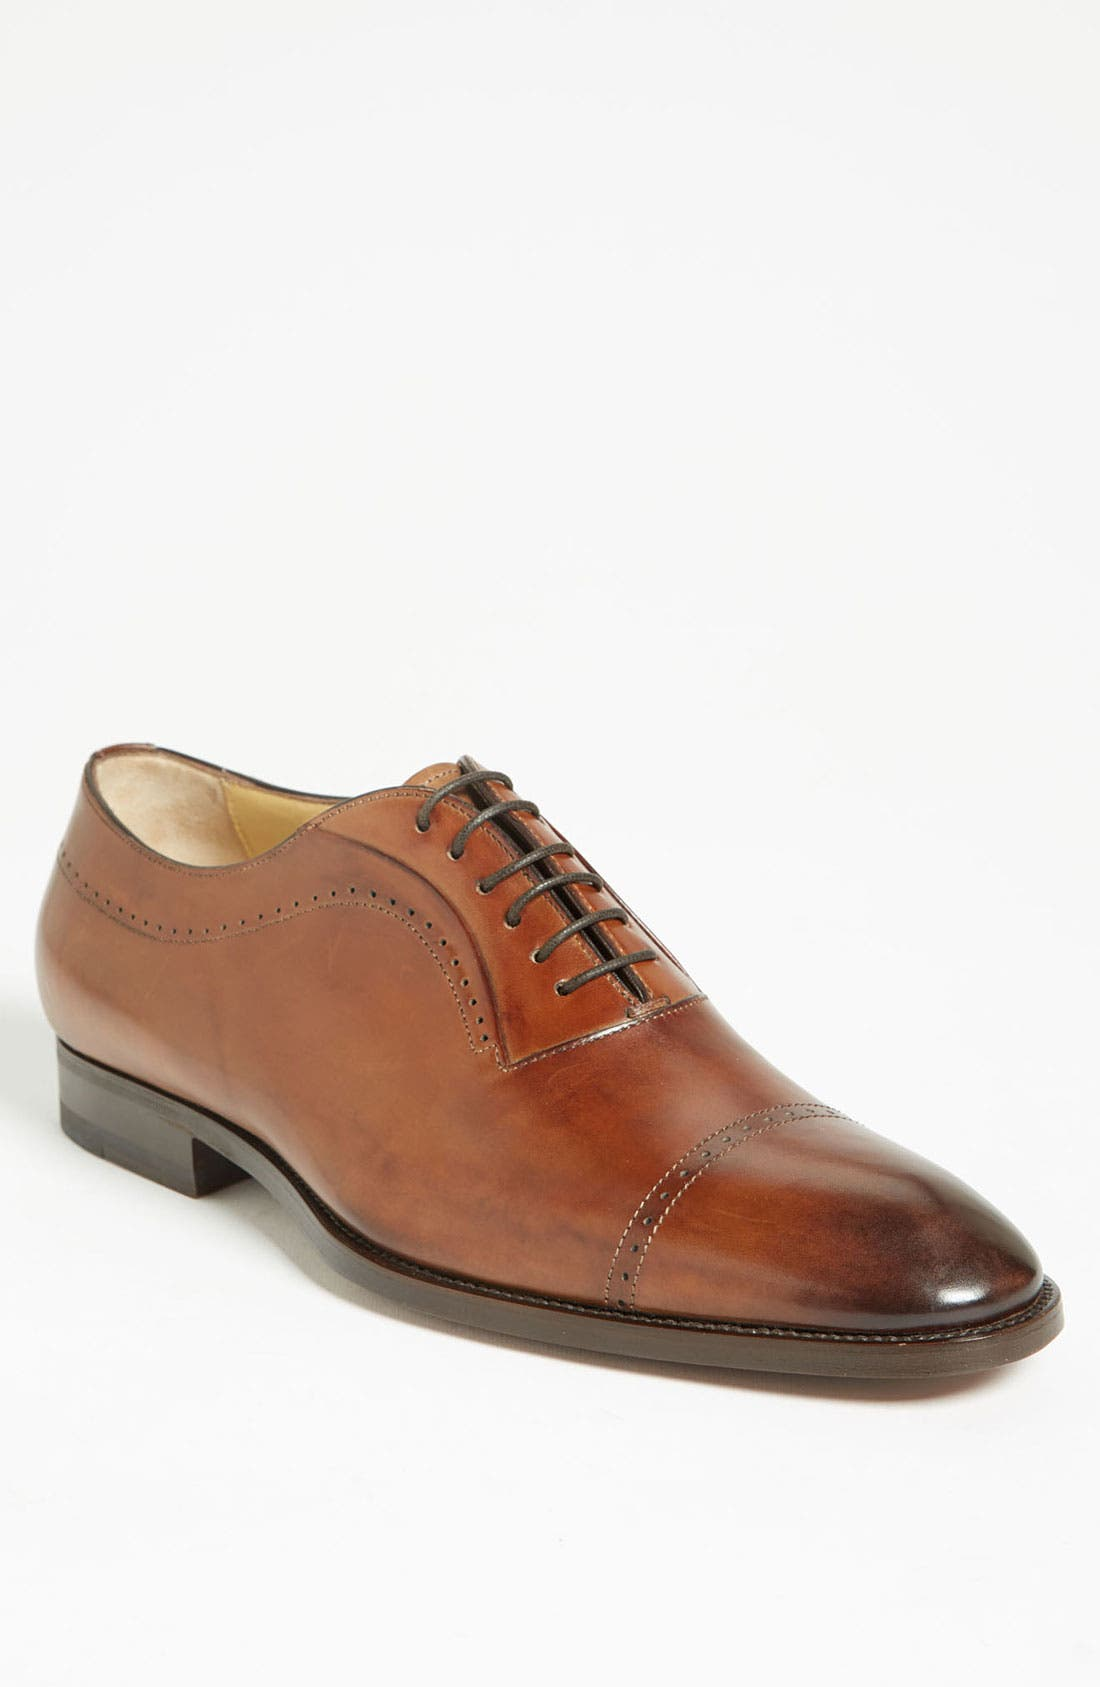 Main Image - Santoni 'Radcliffe' Cap Toe Oxford